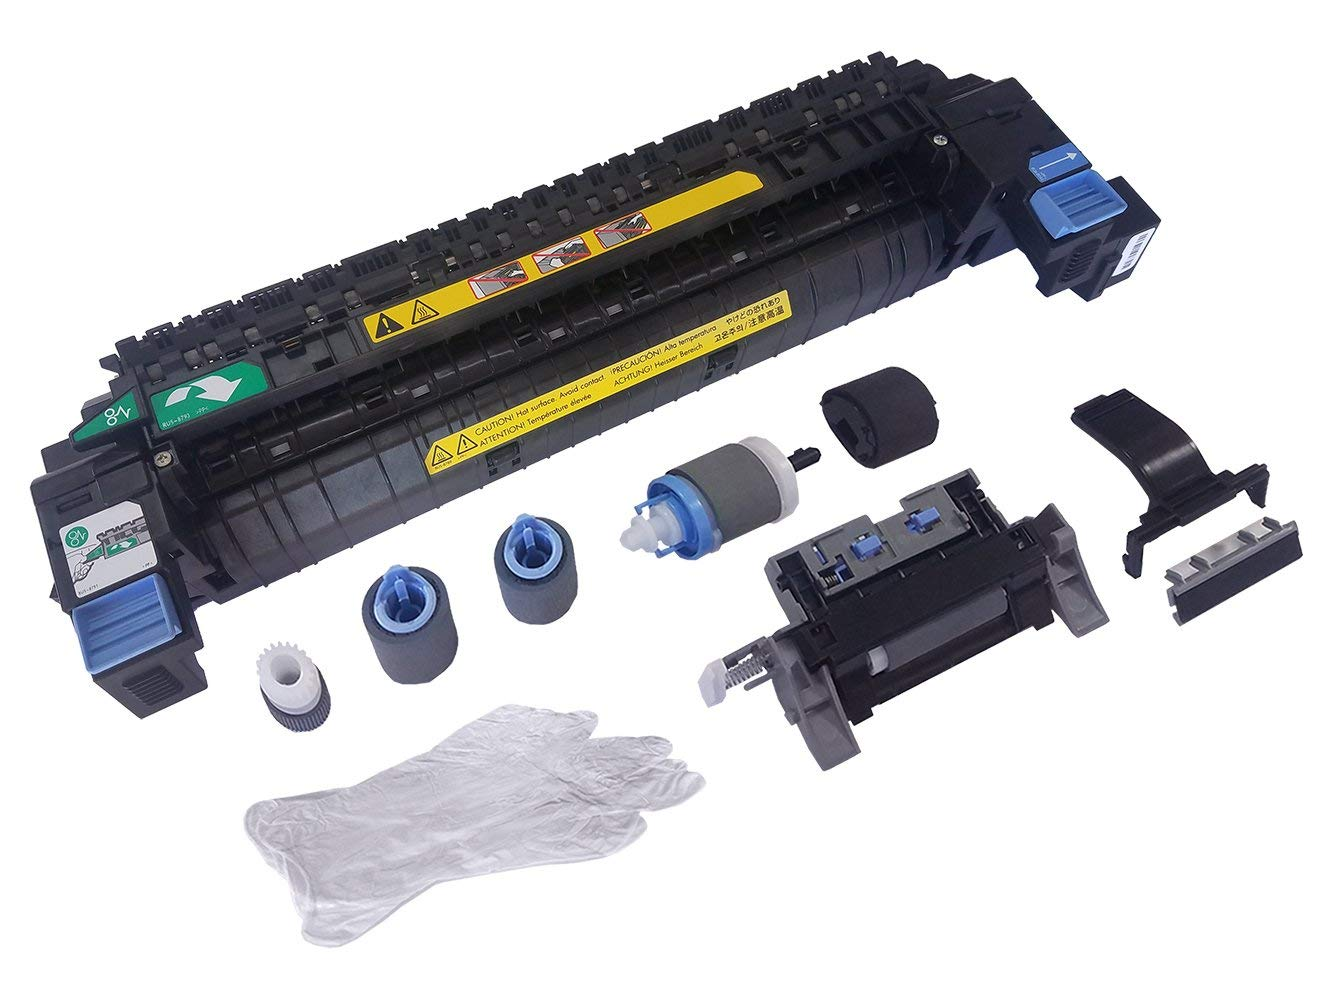 AltruPrint CE710-69001-MK-AP Maintenance Kit for HP Color LaserJet Pro CP5225 (110V) includes RM1-6184 Fuser & Rollers for Tray 1/2/3